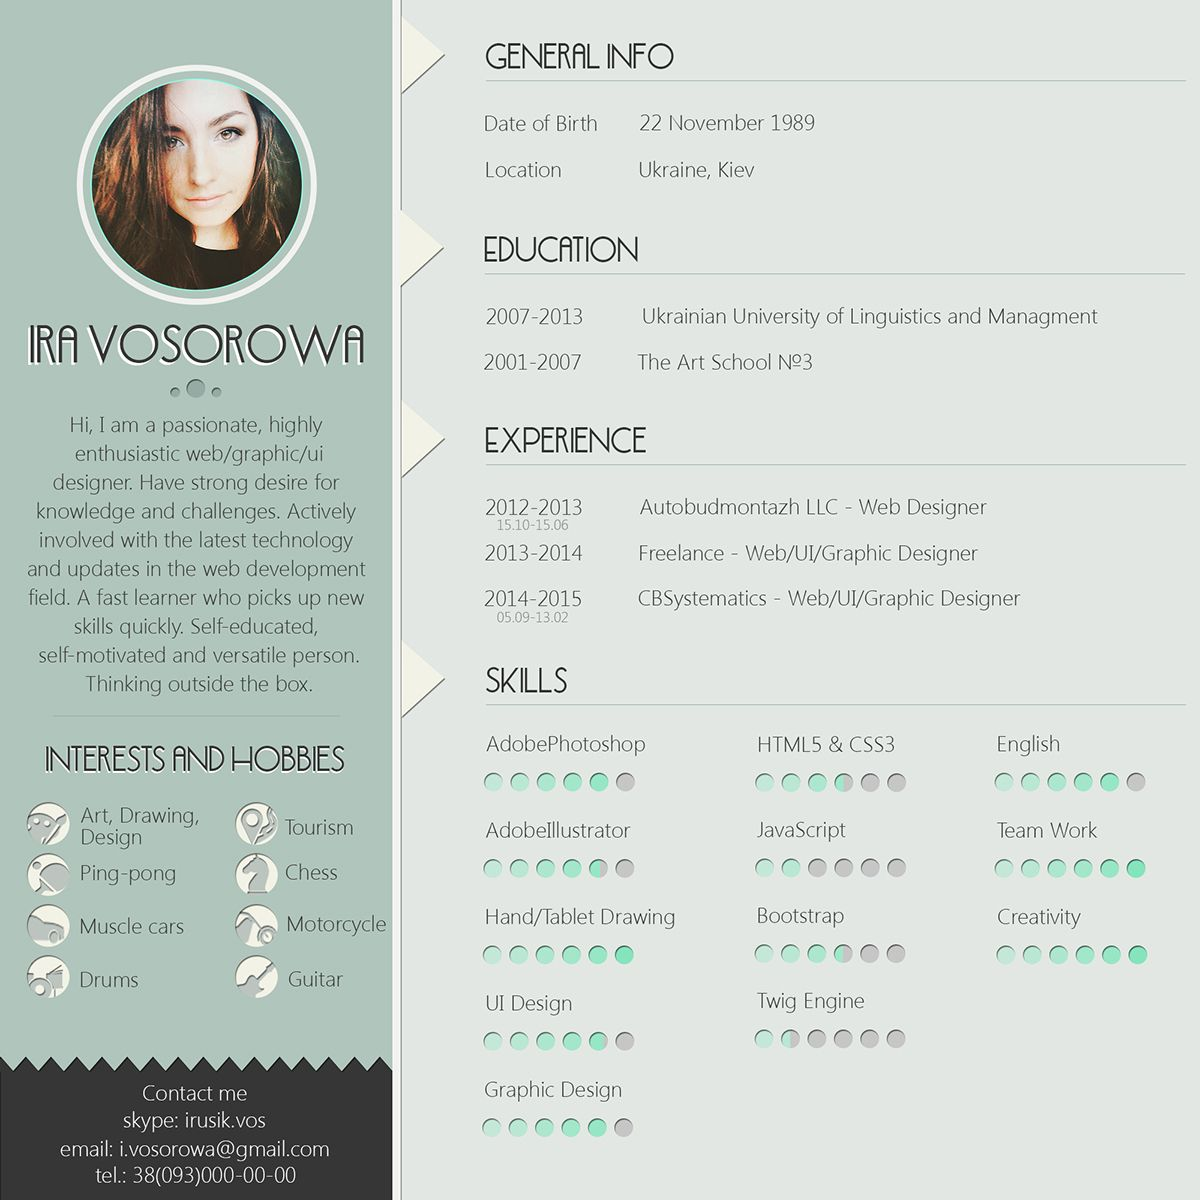 Mint Cv Design. On The Links Below You Can Get Free Psd Template